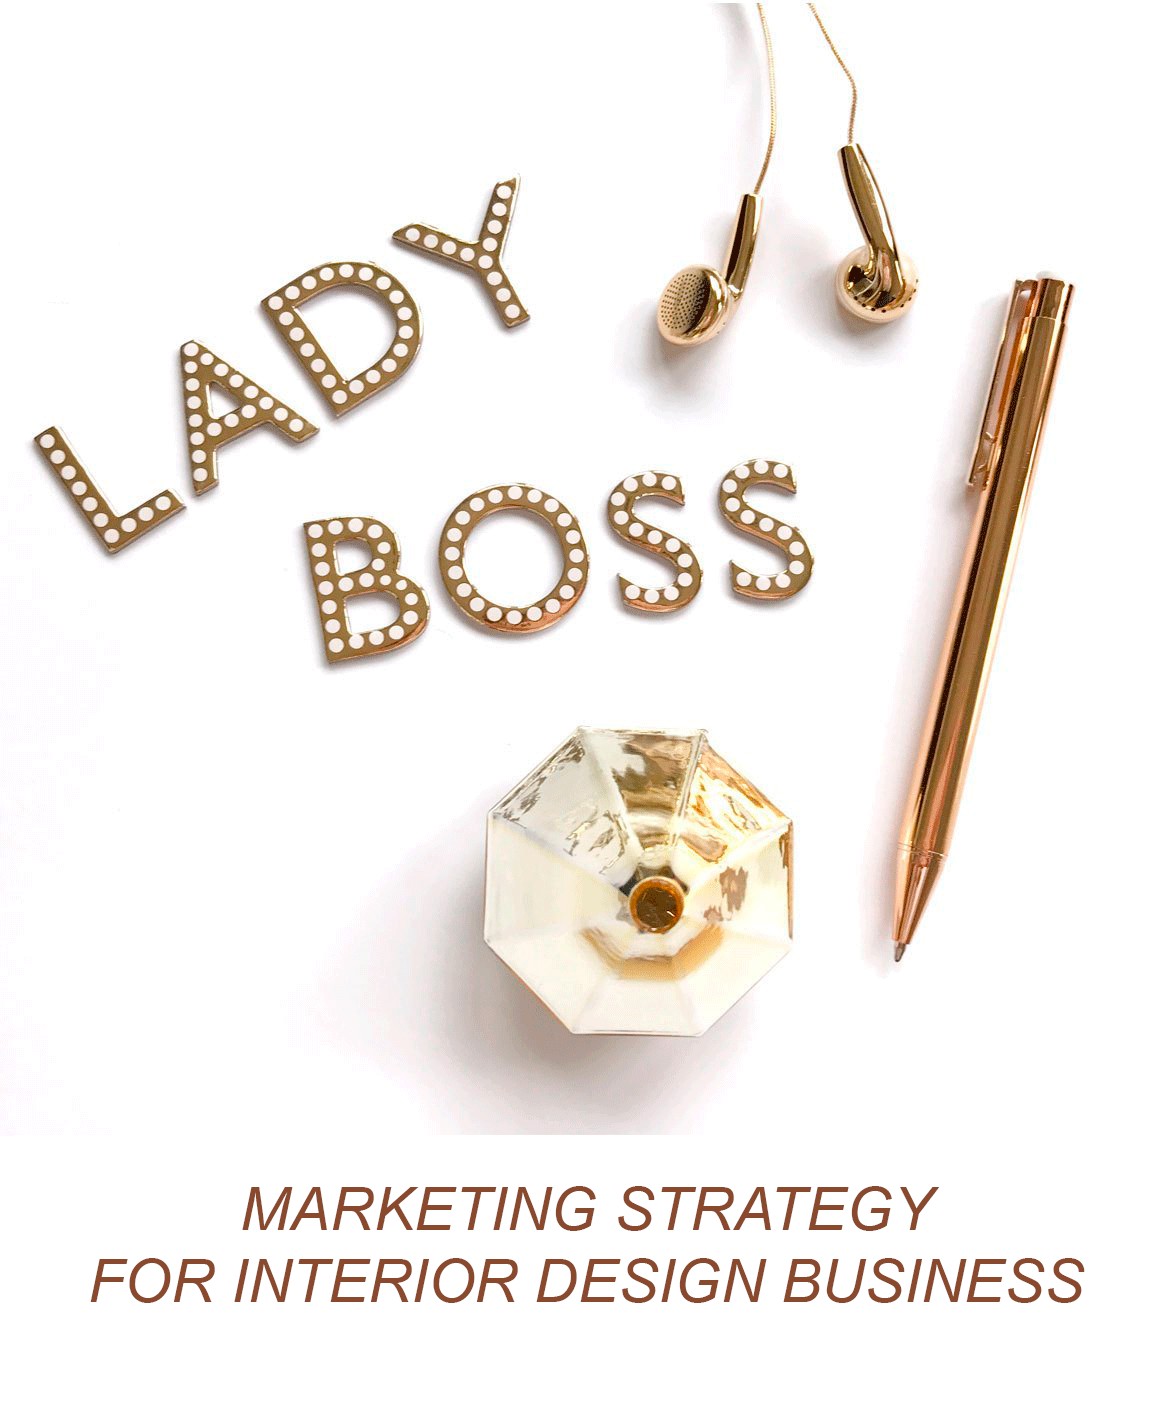 Here Are The Steps To Build Successful Marketing Strategy